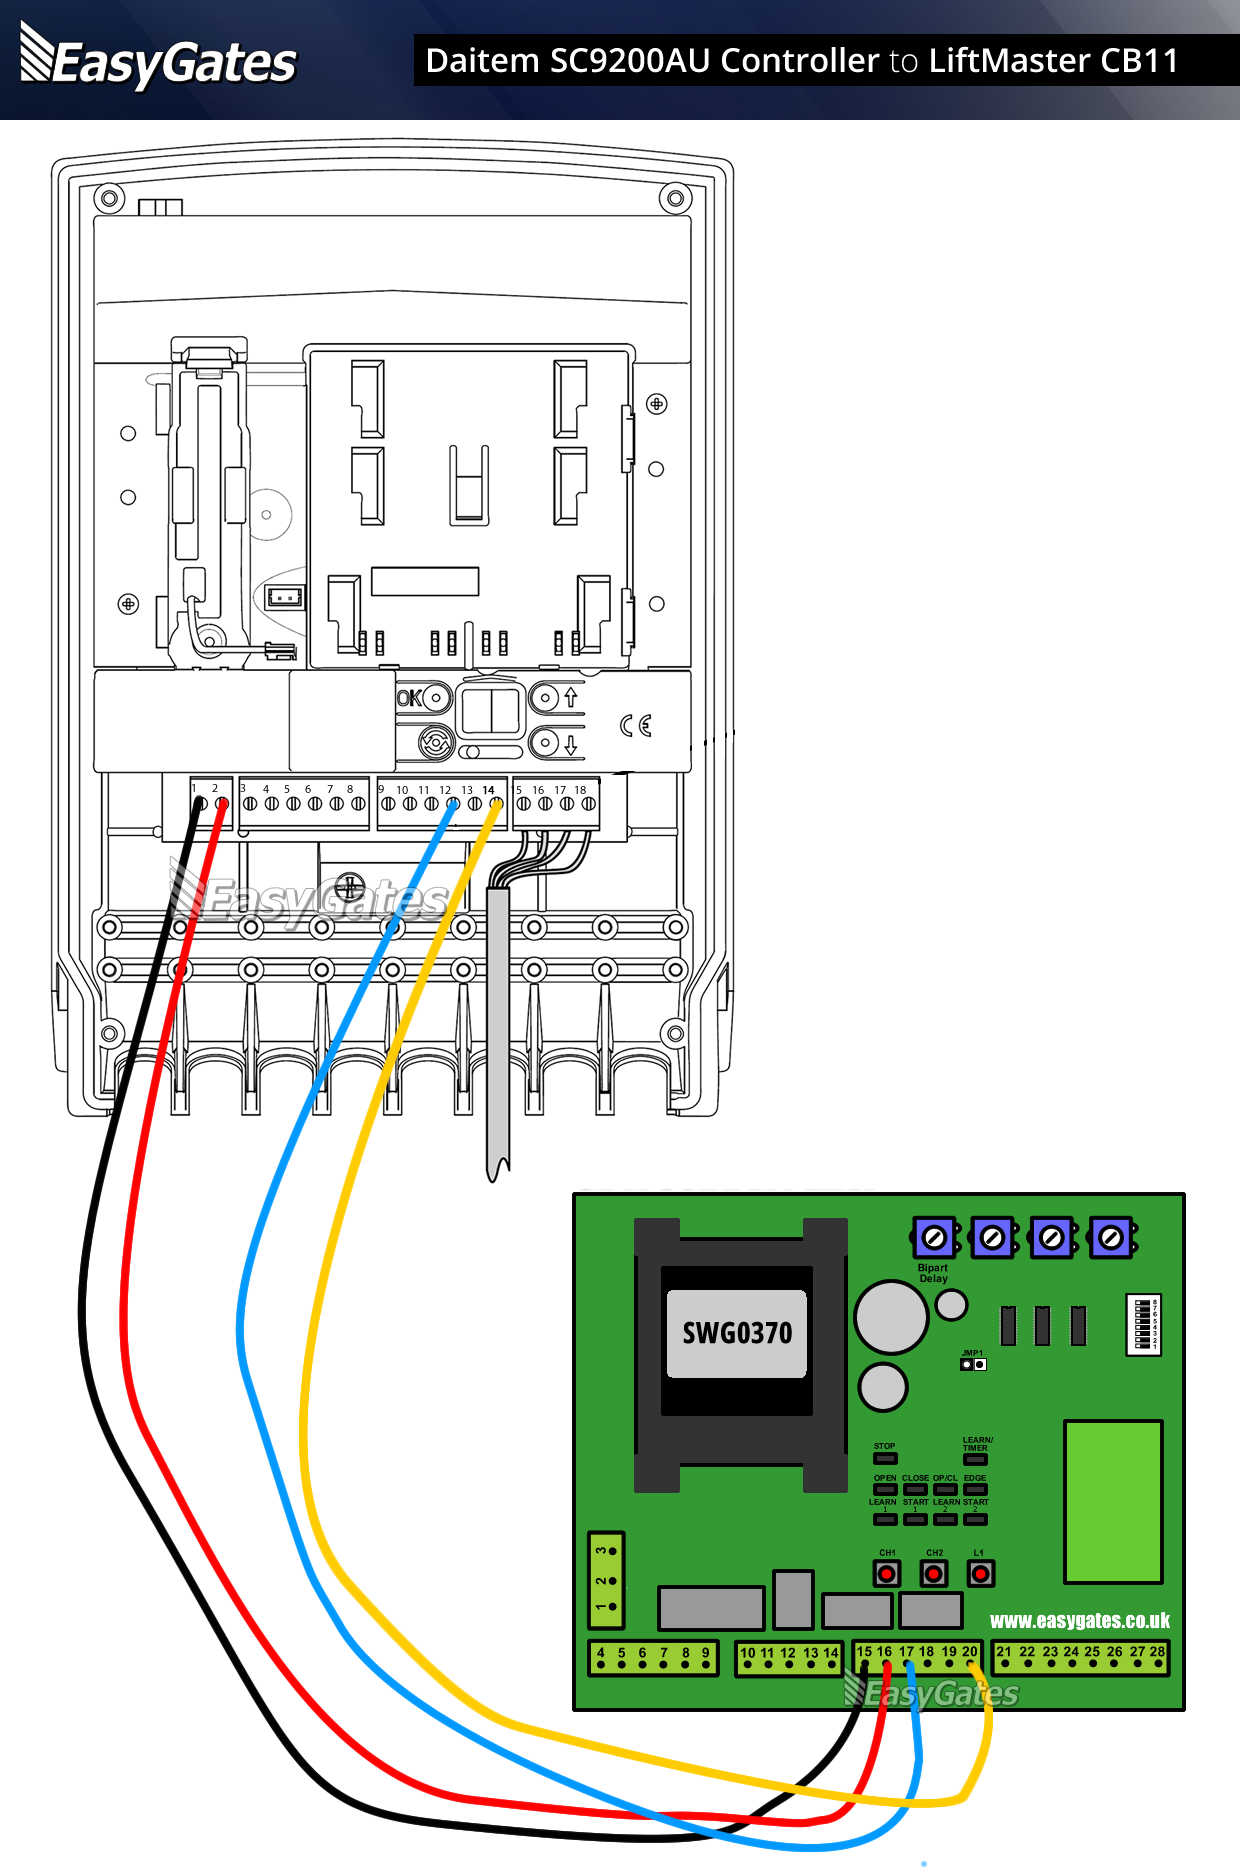 Daitem SC200AU to CB11 Panel flattened chamberlain garage door wiring diagram wirdig readingrat net chamberlain garage door opener wiring diagram at crackthecode.co